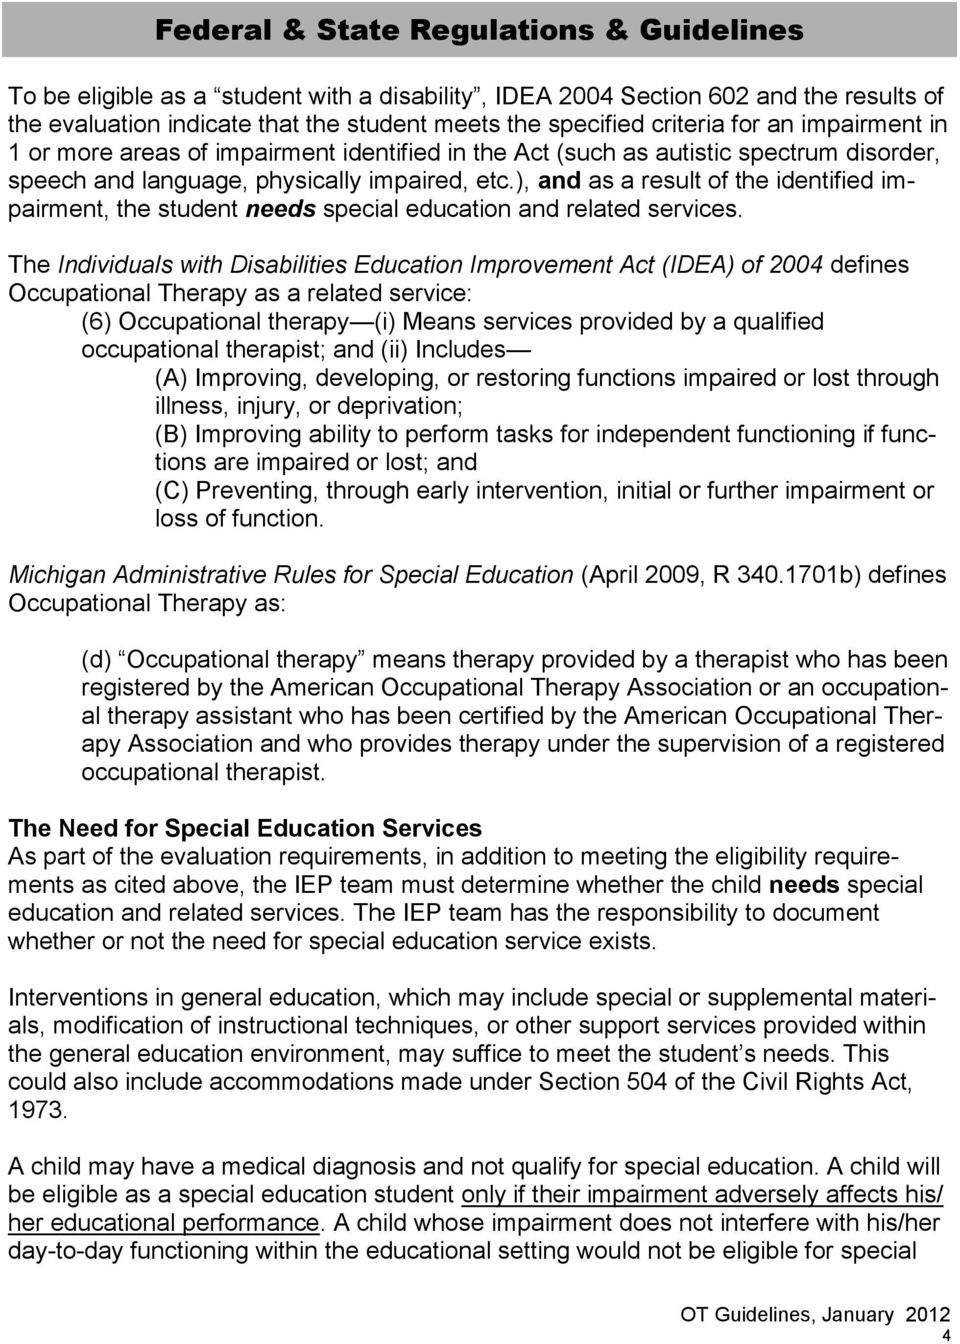 Providing Iep May Not Suffice If >> Occupational Therapy Guidelines For Determining Evaluation